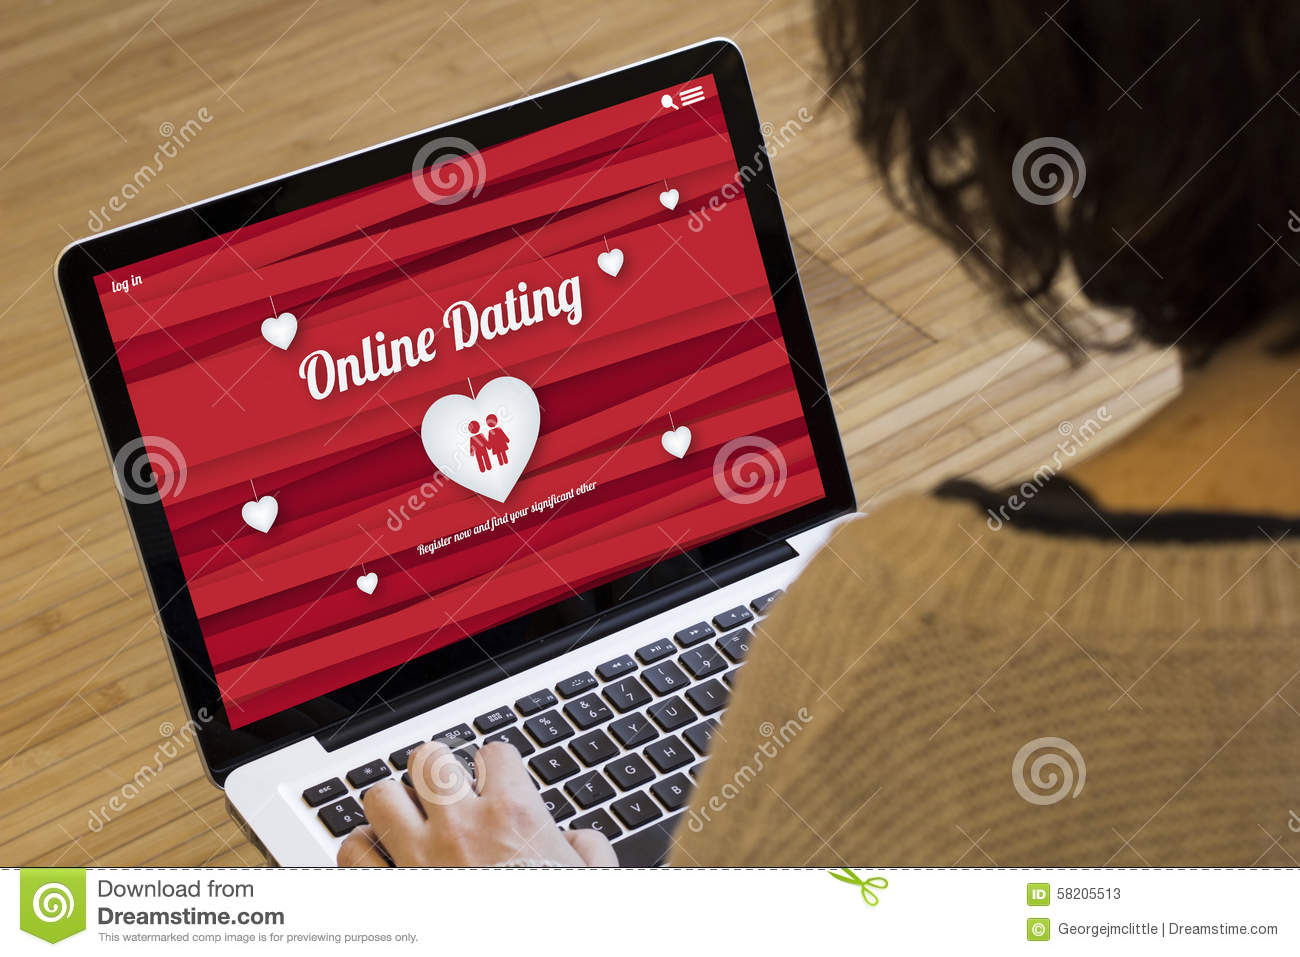 Screen names for online dating sites